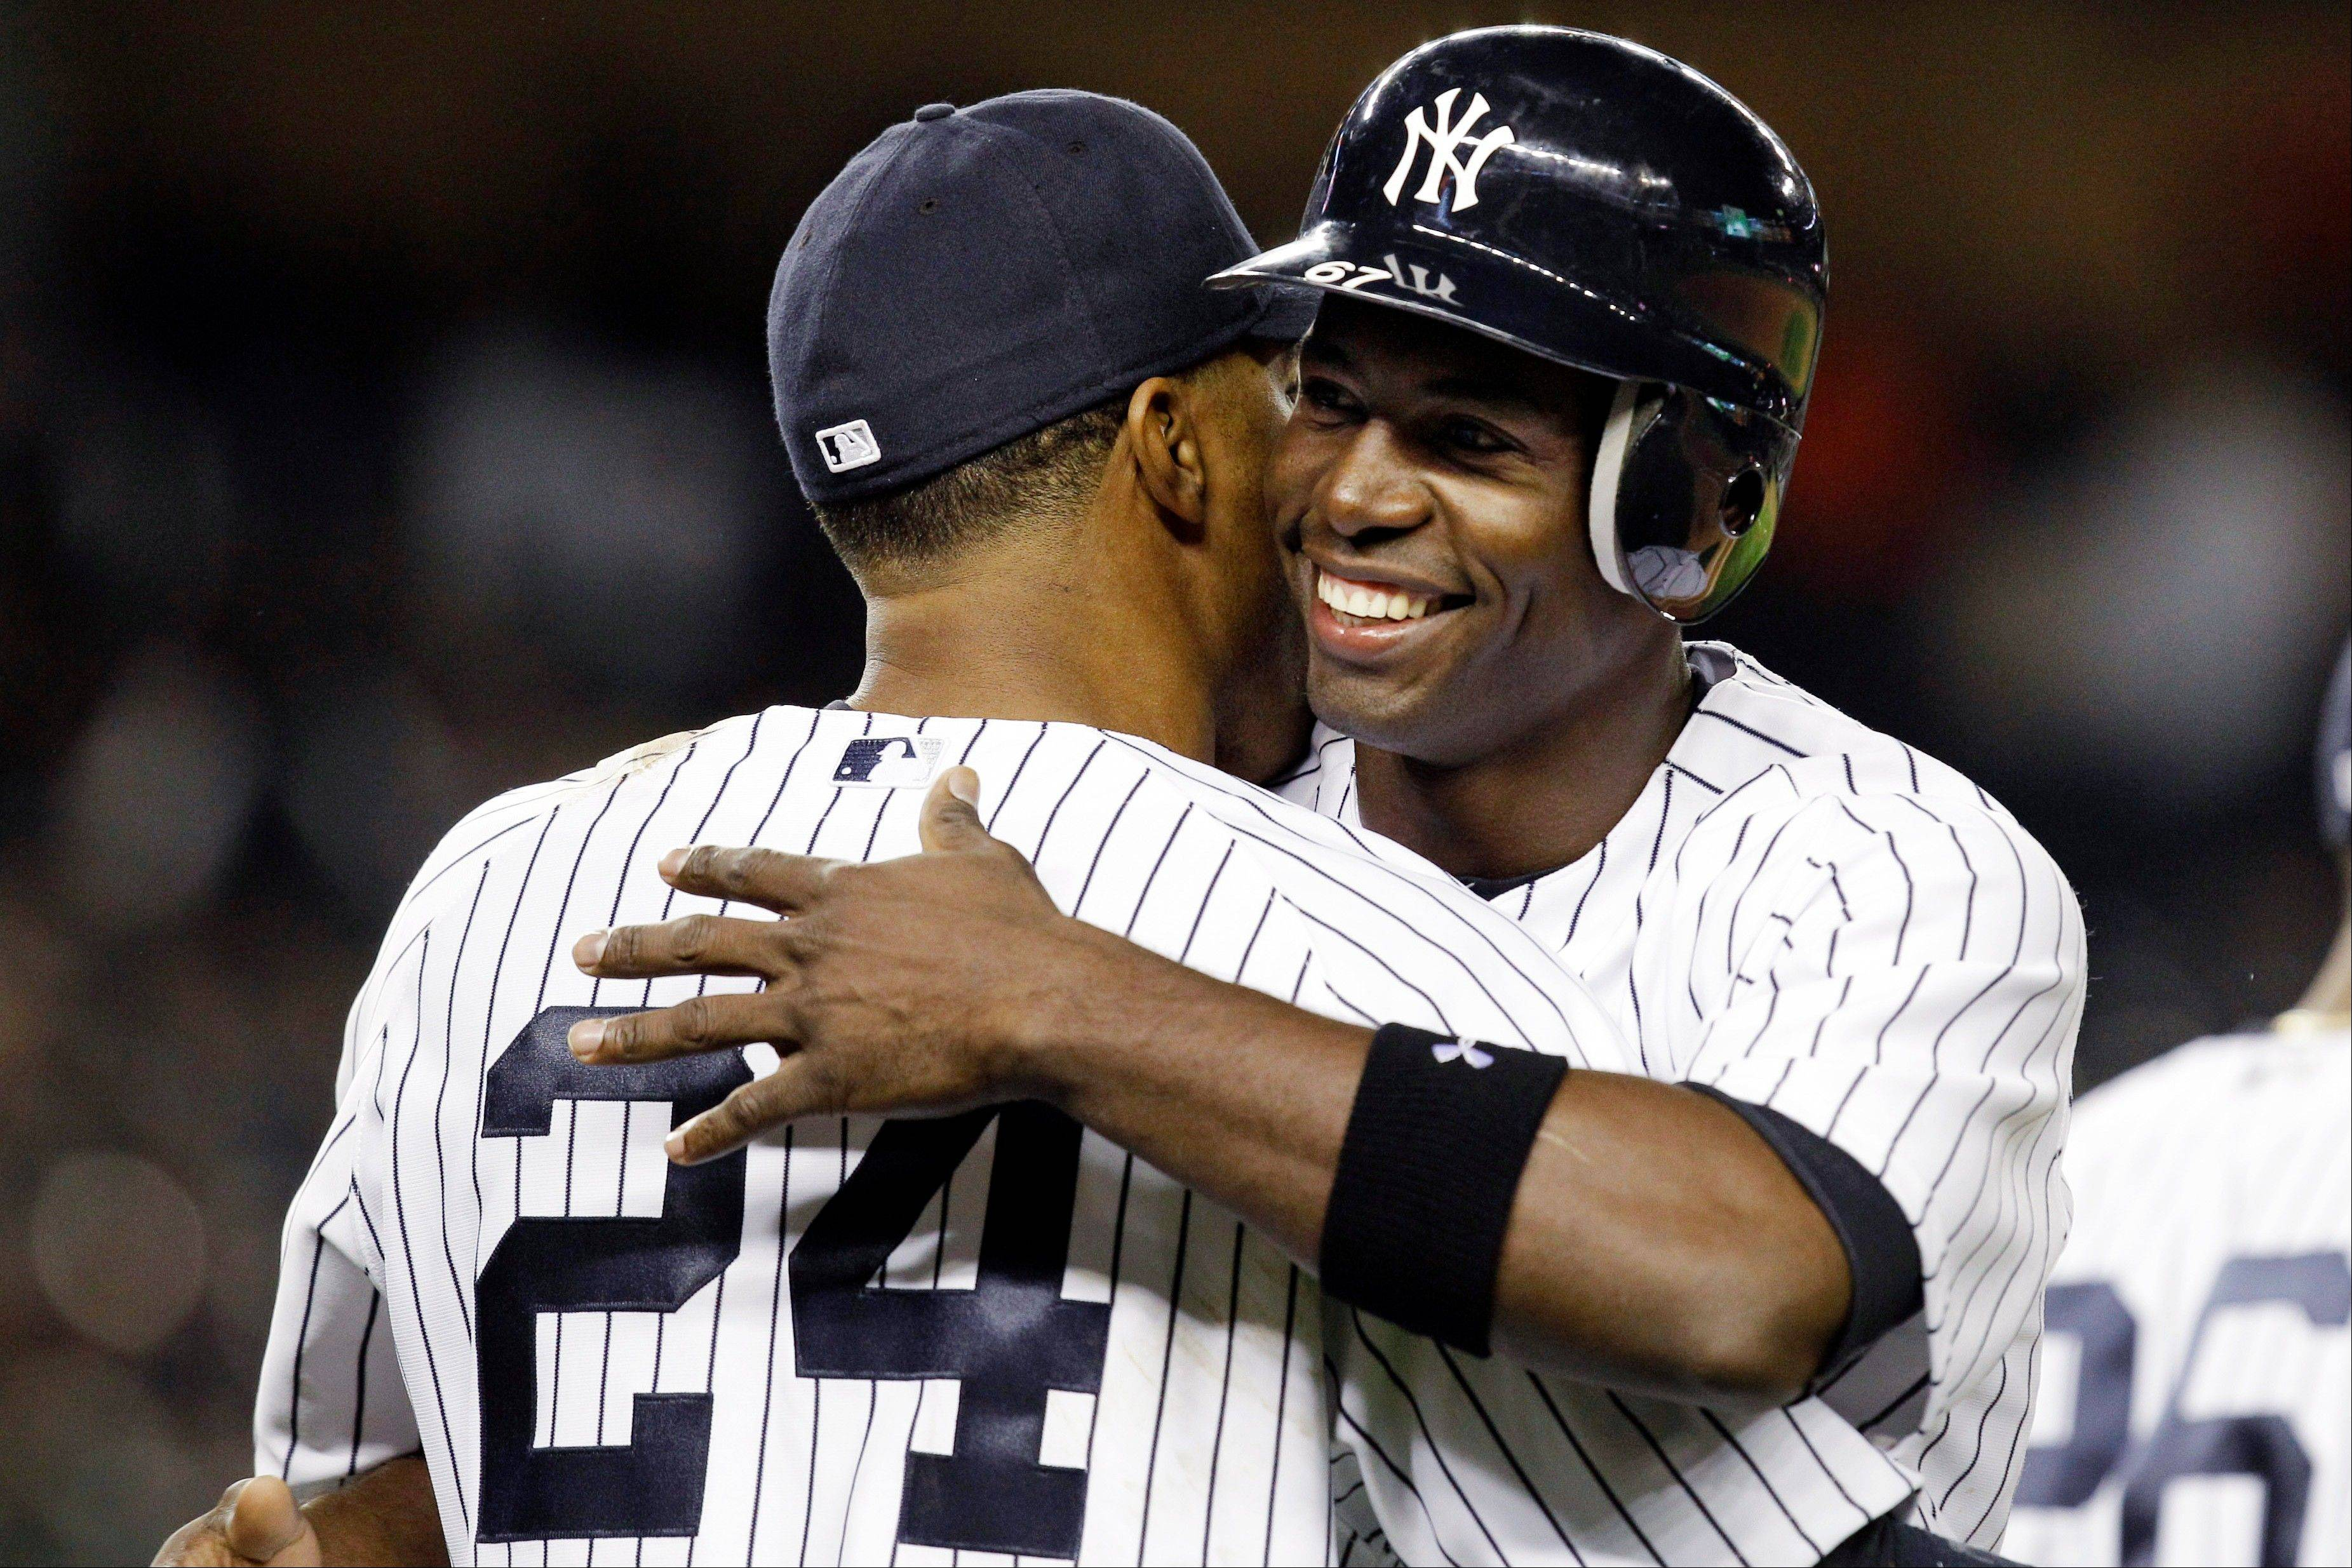 The Yankees' Robinson Cano embraces Melky Mesa after Mesa drove in a run on his first major-league hit Monday in New York.